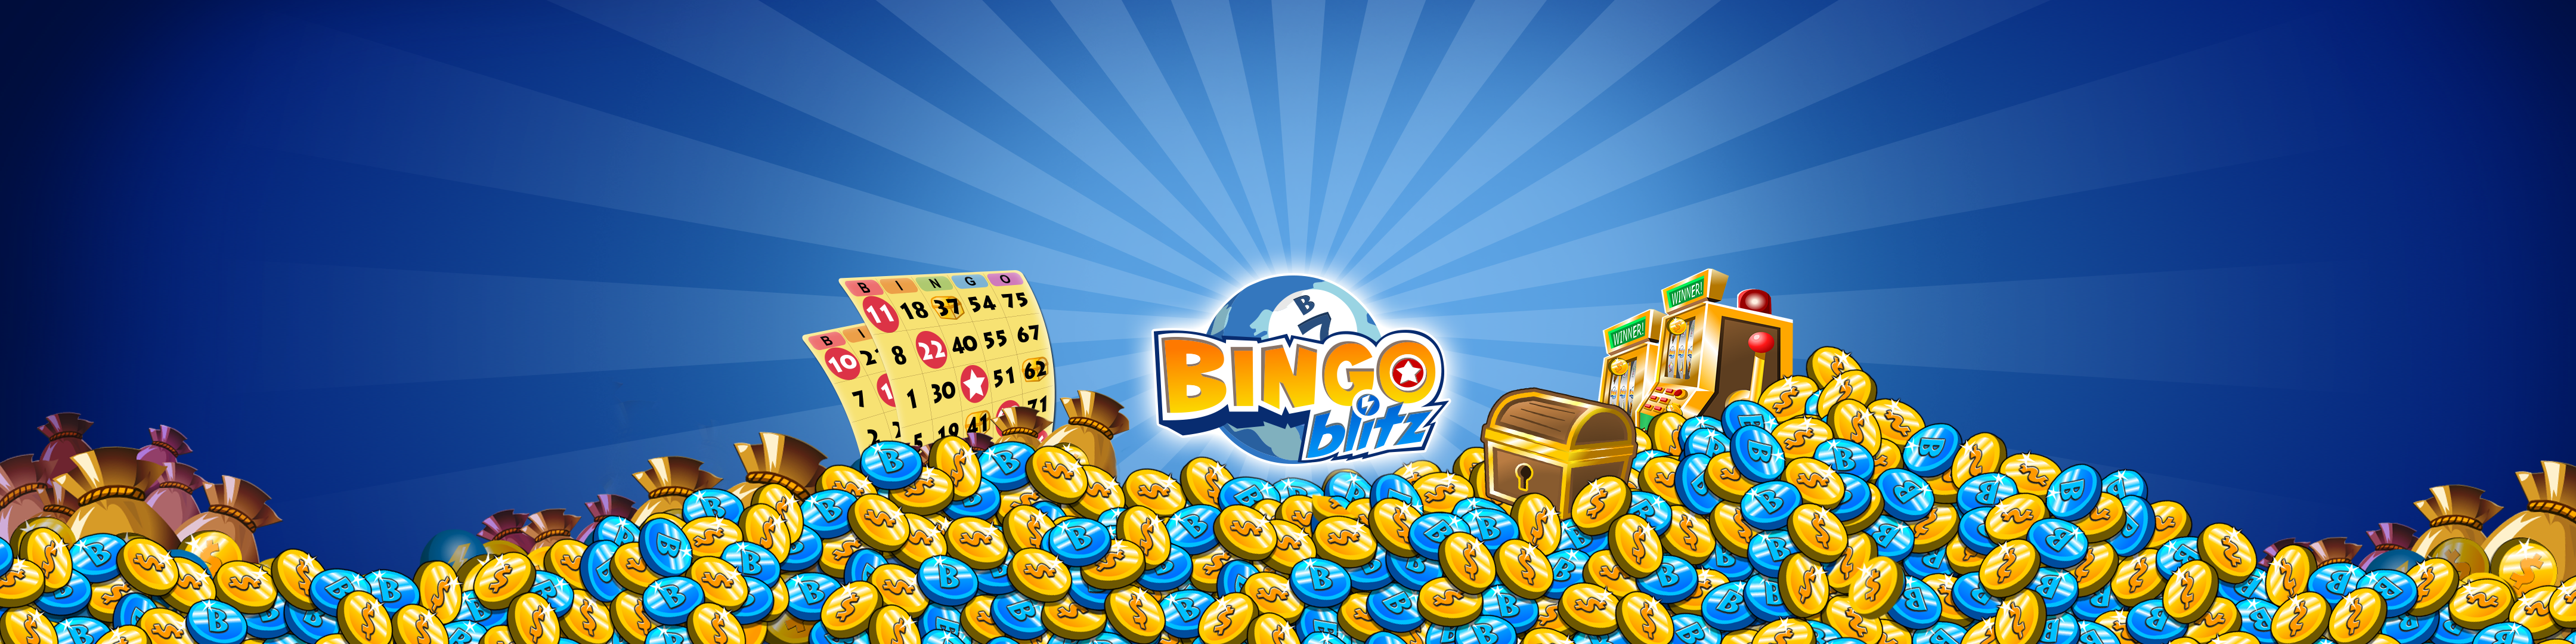 bingo blitz free credits no download